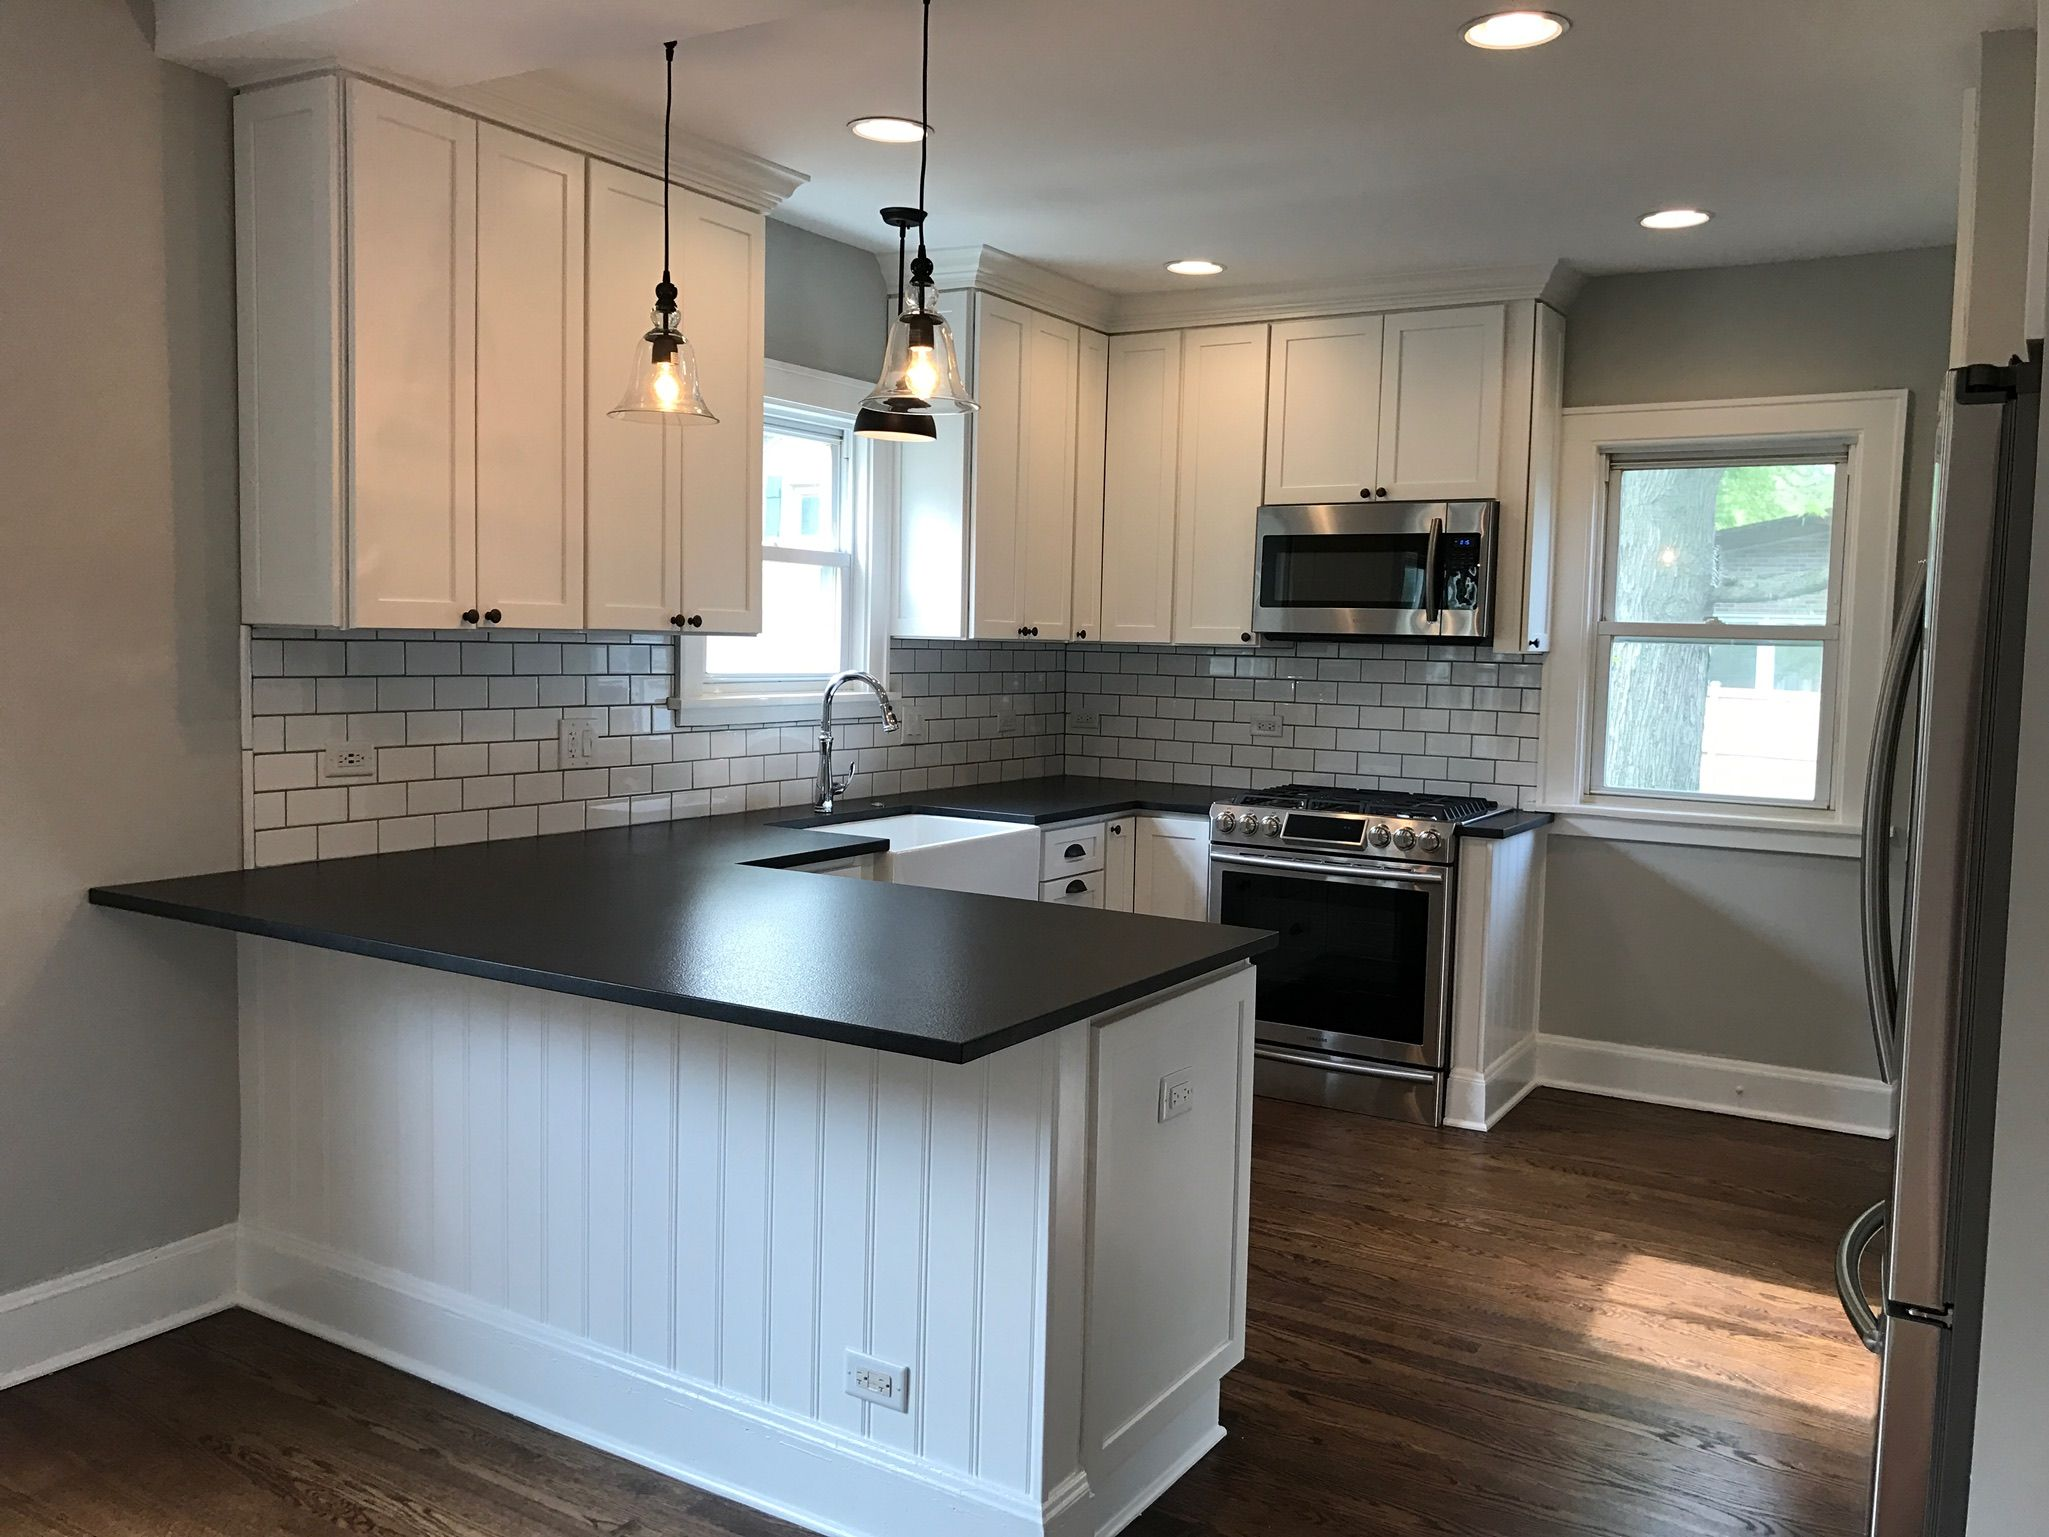 Renovated Vintage Farmhouse Style Kitchen Black And White